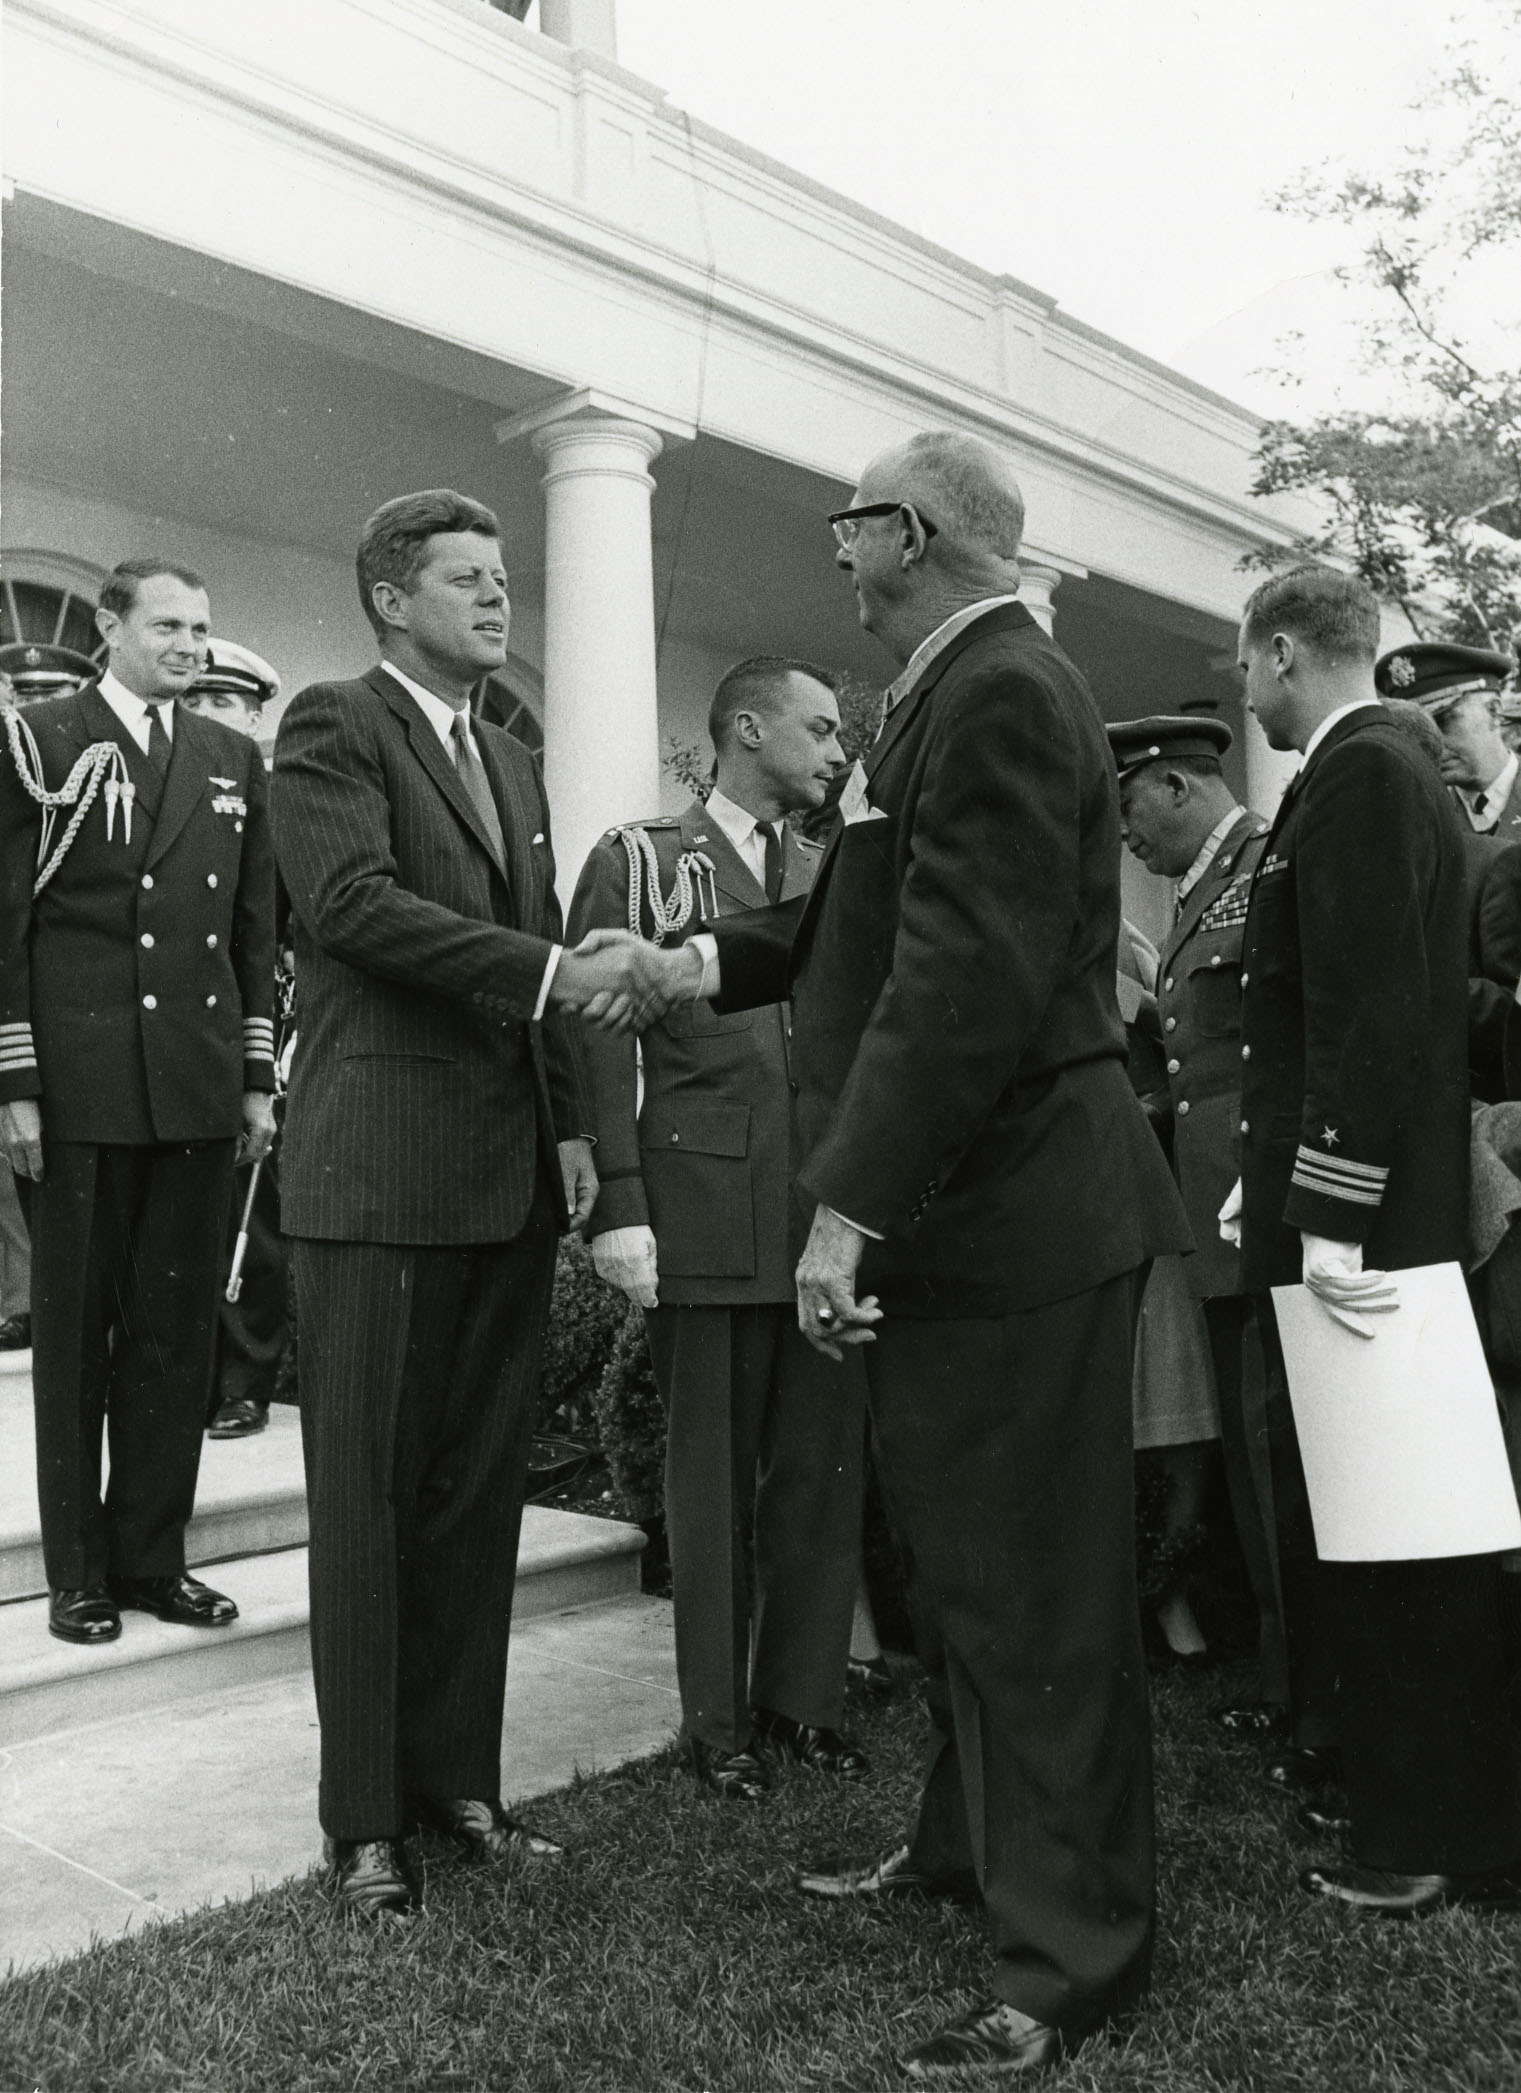 Gregory meeting president John F. Kennedy at a military reception at the White House, May 2, 1963.